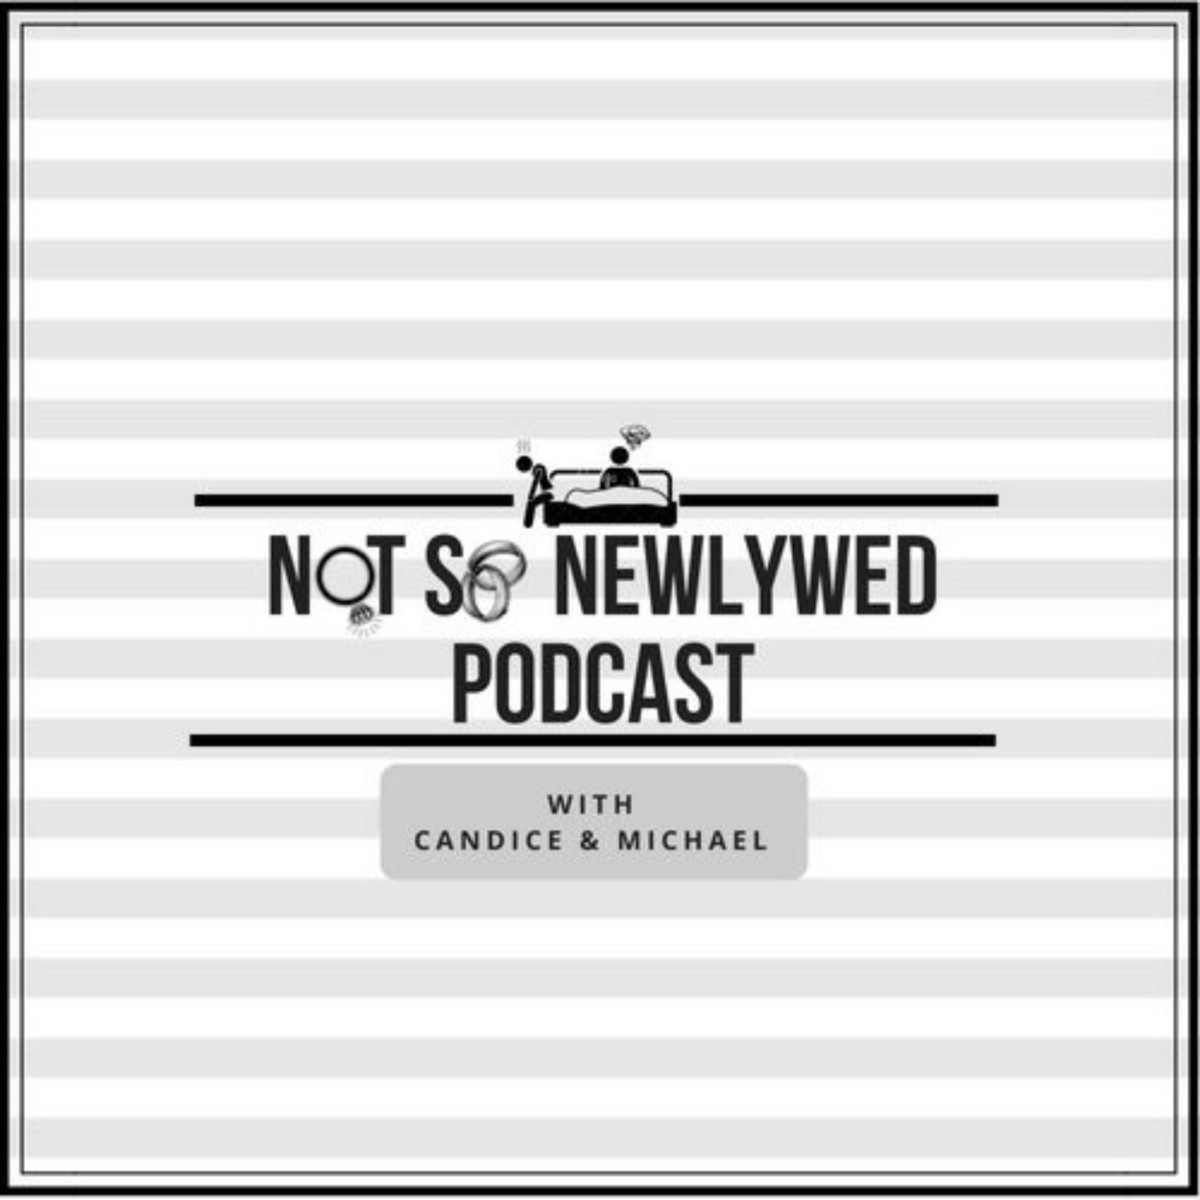 Not So Newlywed Pod - Ep. 02 - Woke In Love f/ @Blike_Dante